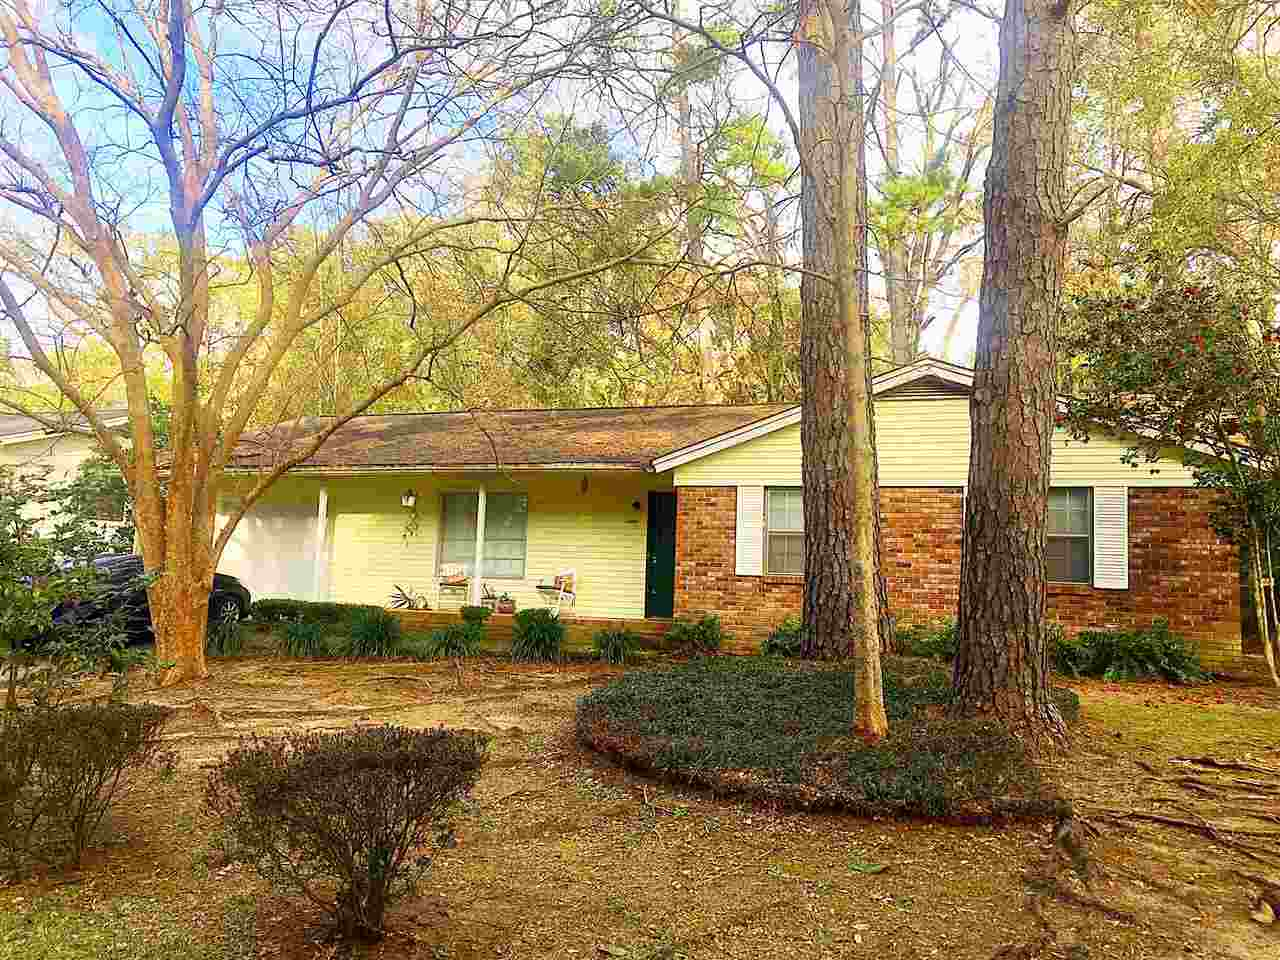 $176,000 - 4Br/2Ba -  for Sale in Scenic Hts Unit 5, Tallahassee